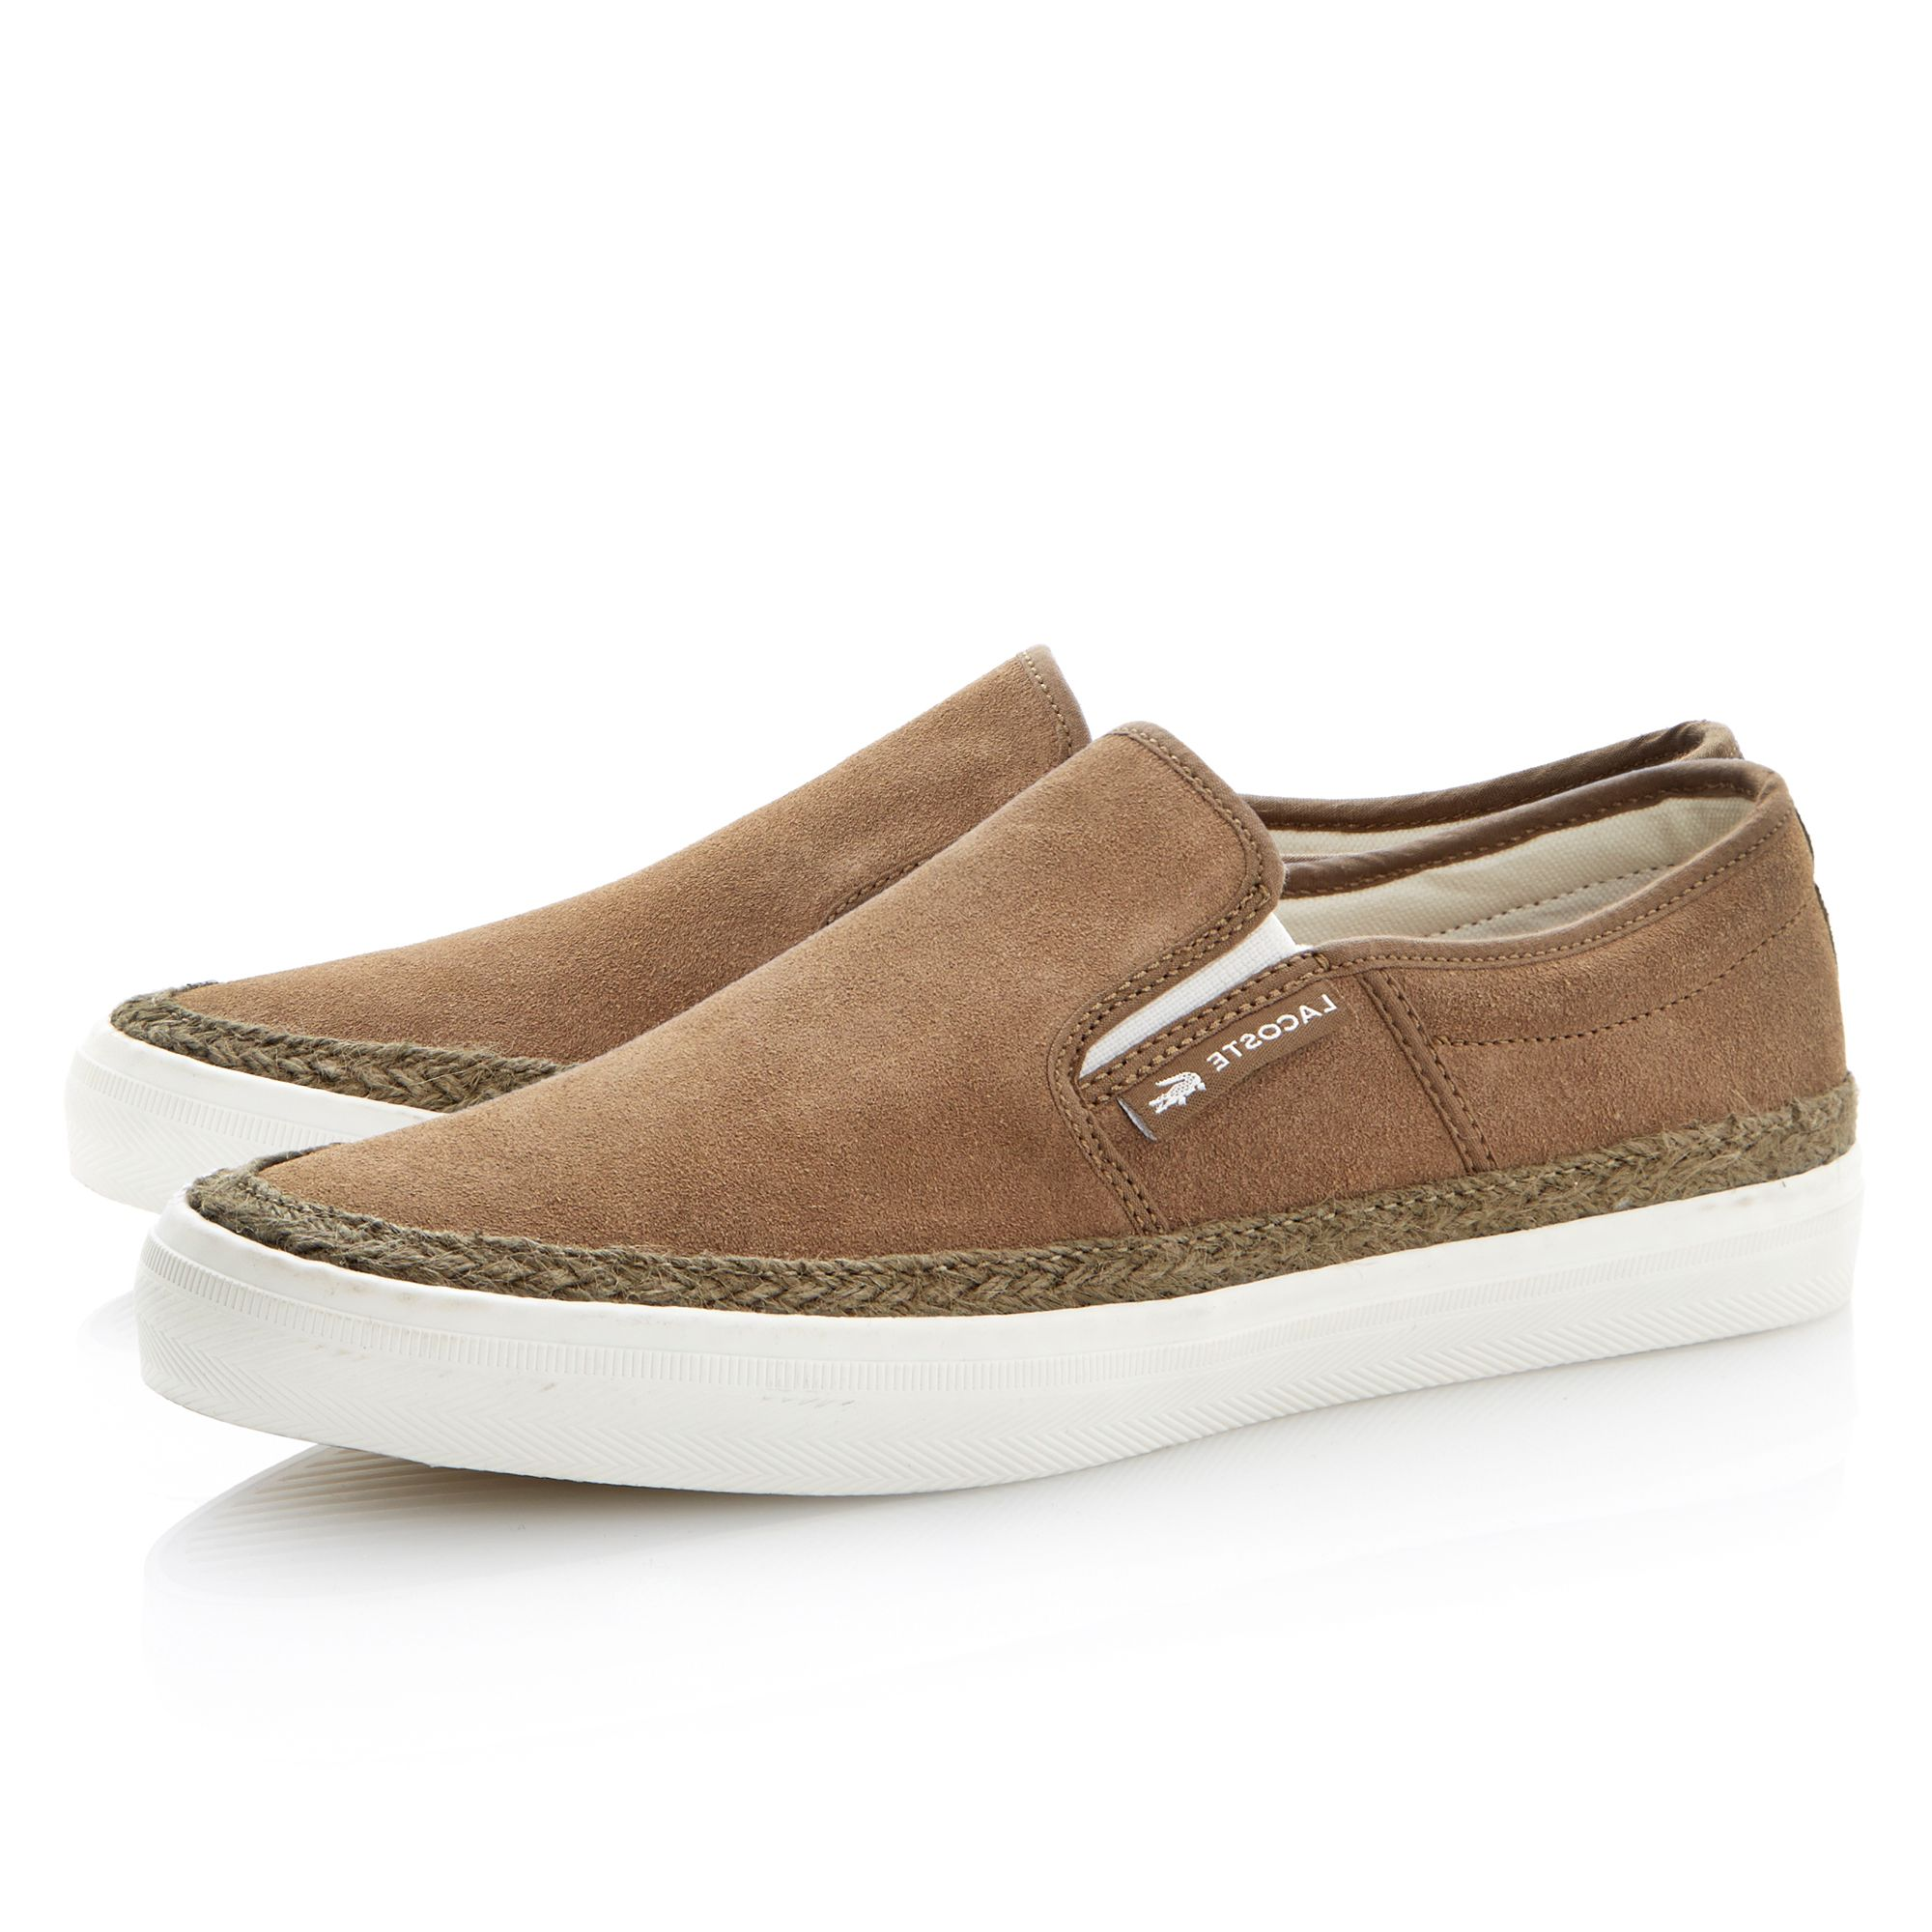 Gazon 2 apron slip on casual shoes